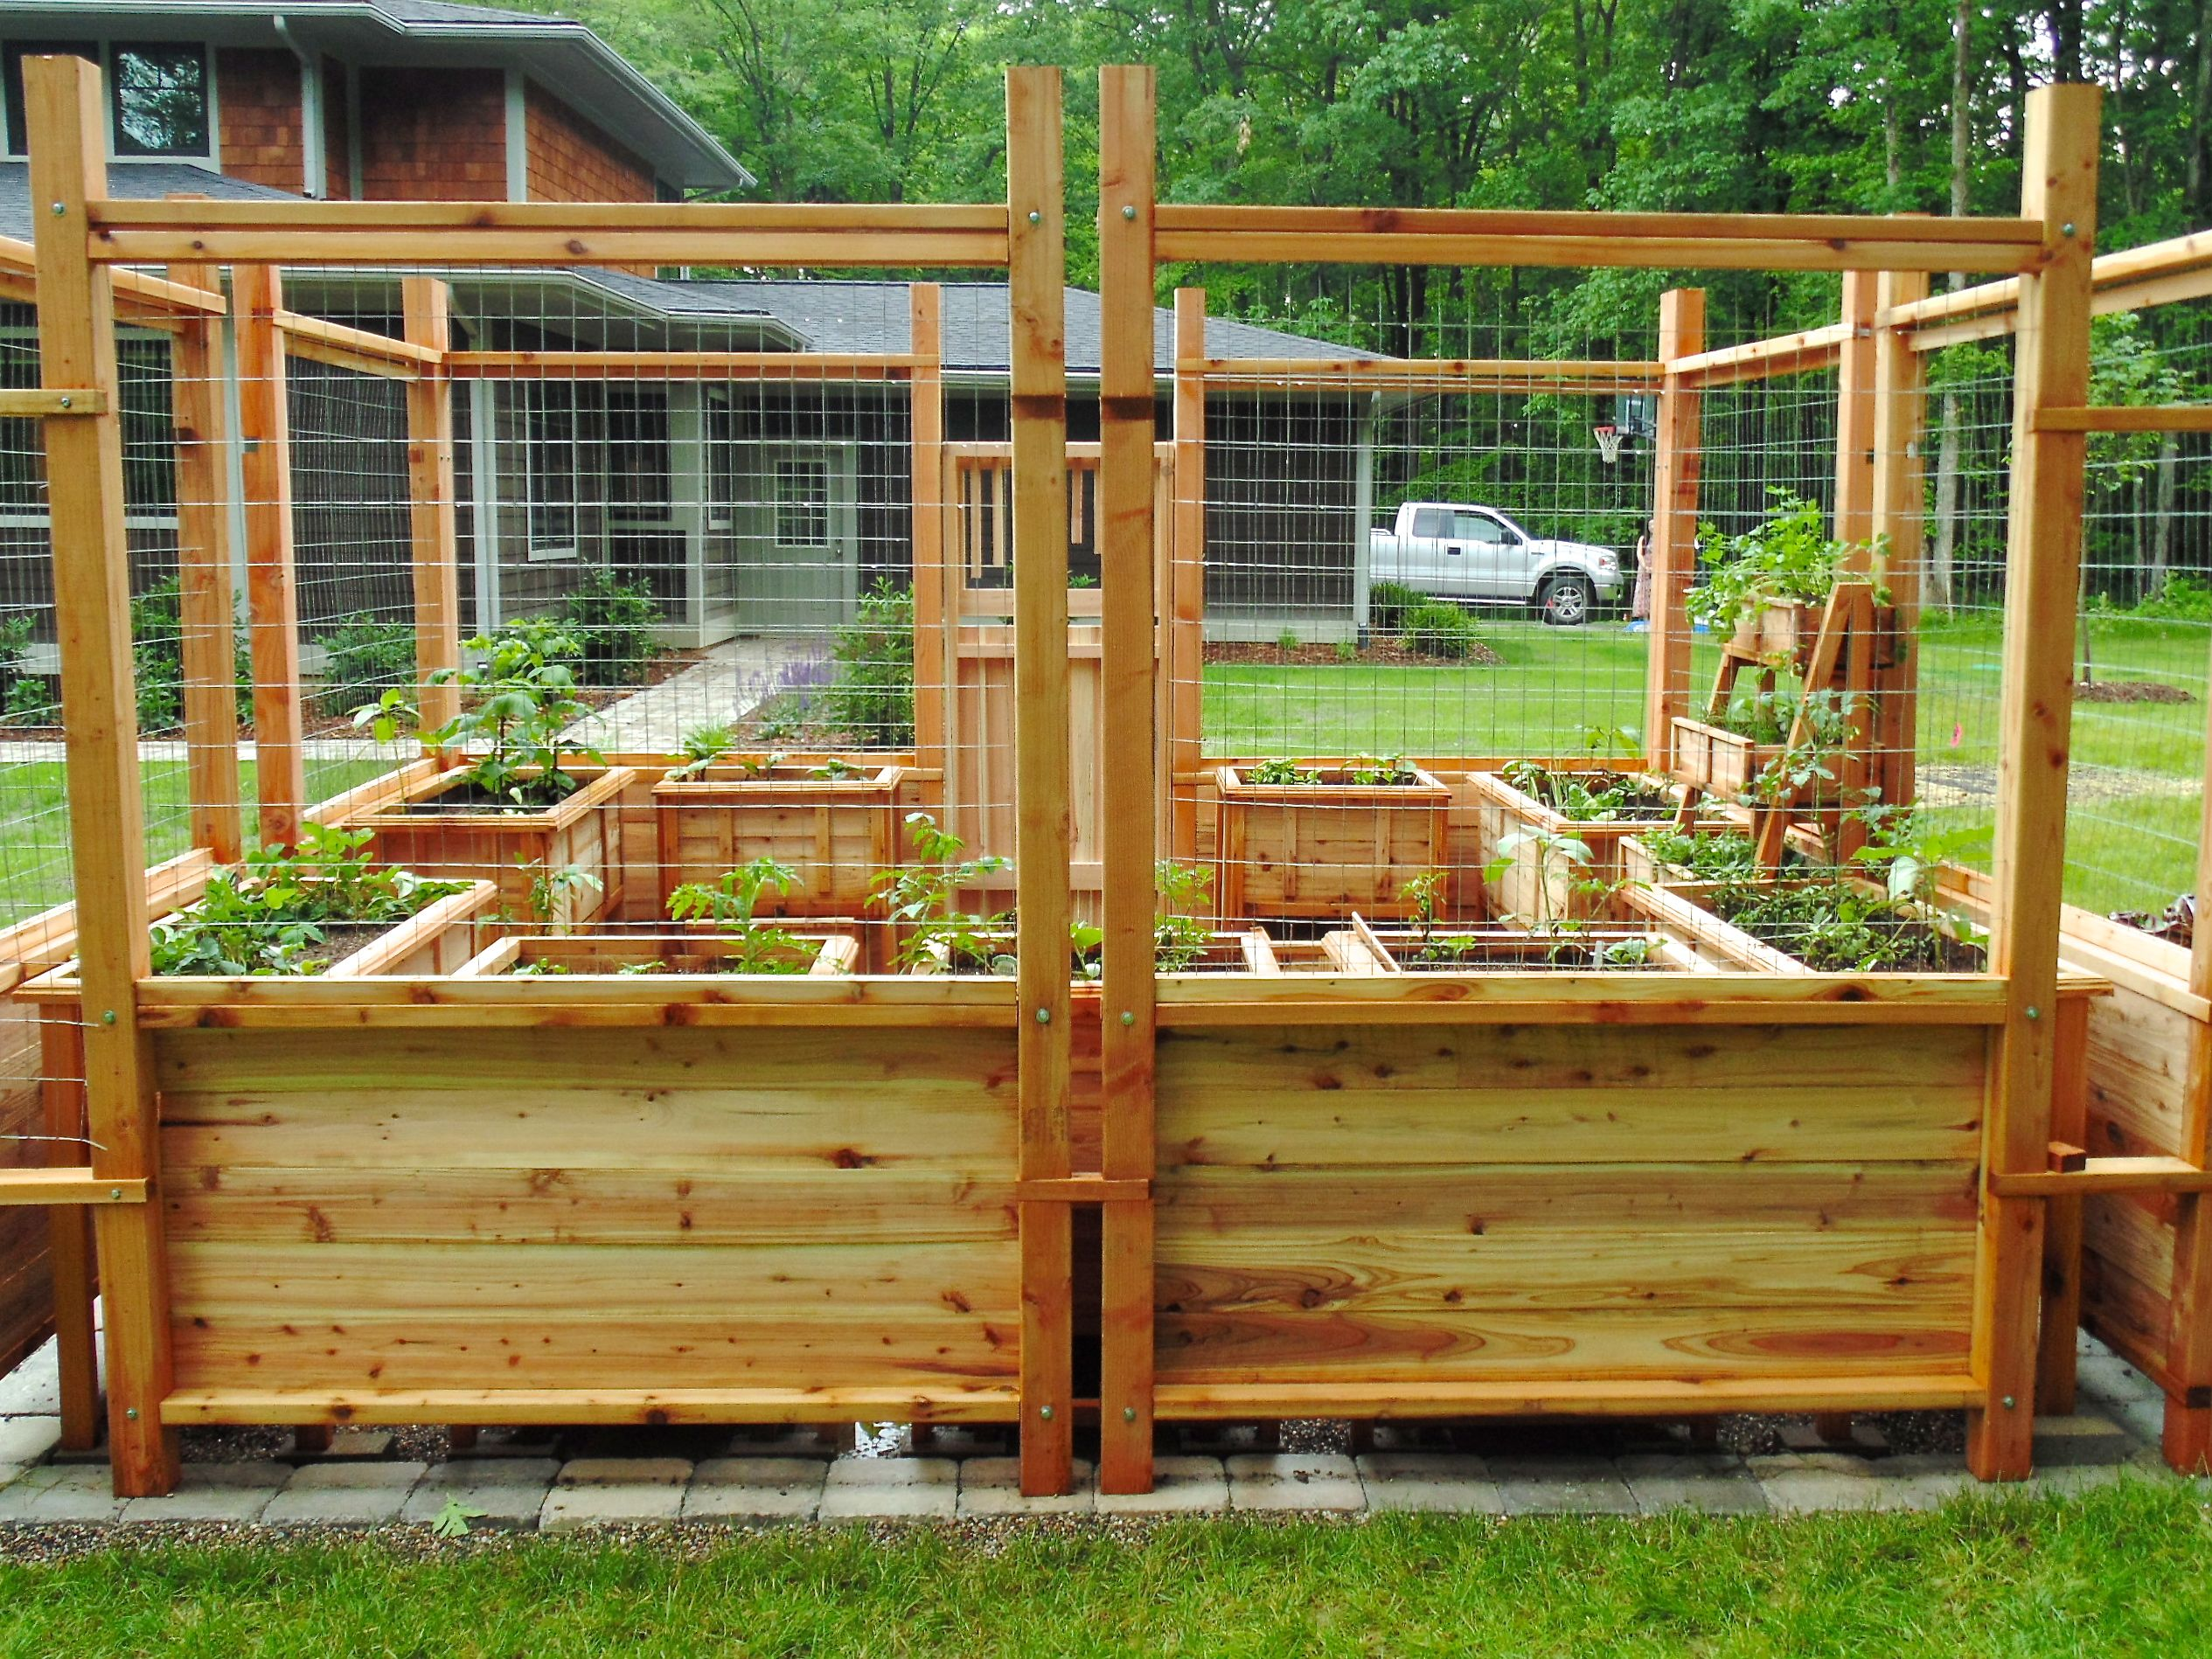 farmworks in ann arbor is your home for raised bed gardening ideas